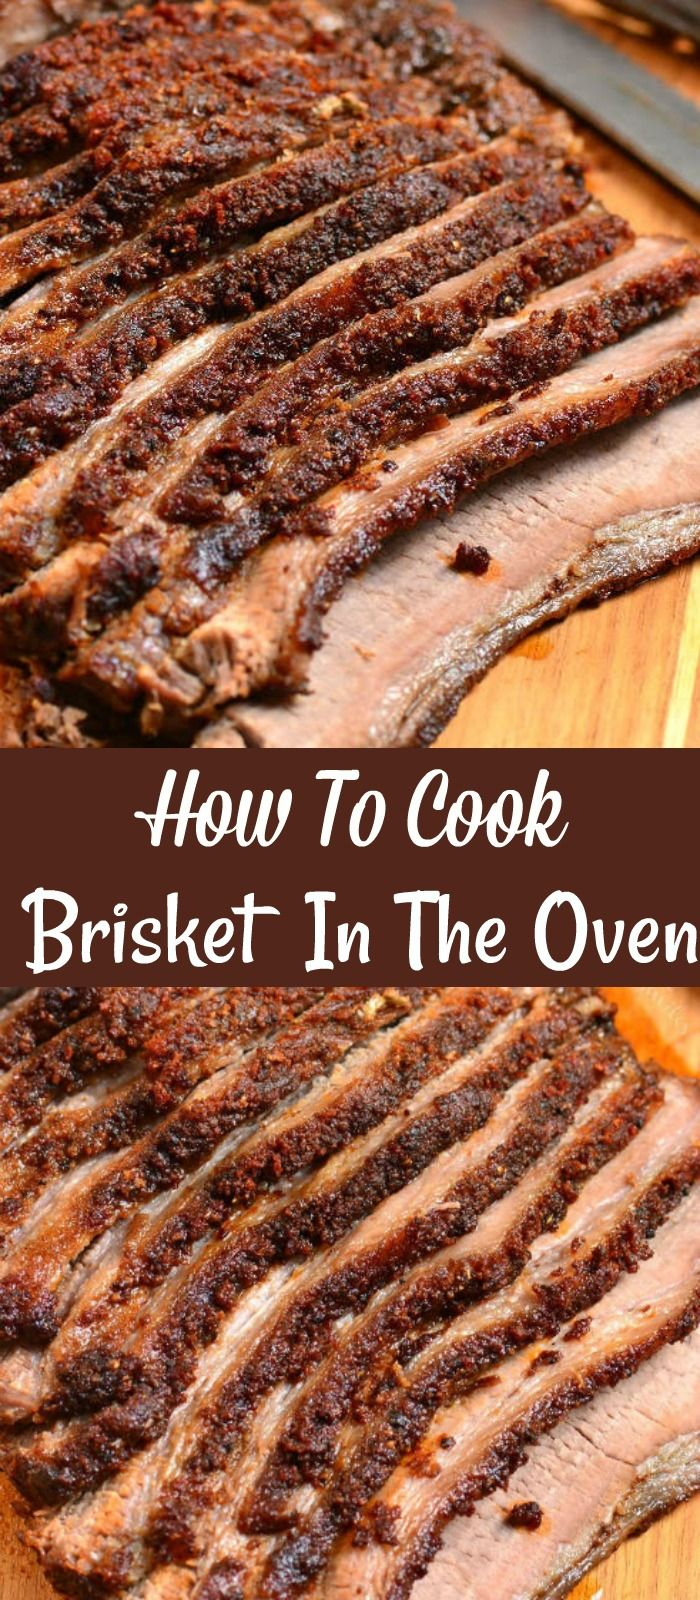 How To Cook Beef Brisket In The Oven In 2020 Brisket Oven Brisket Recipes Smoked How To Cook Beef